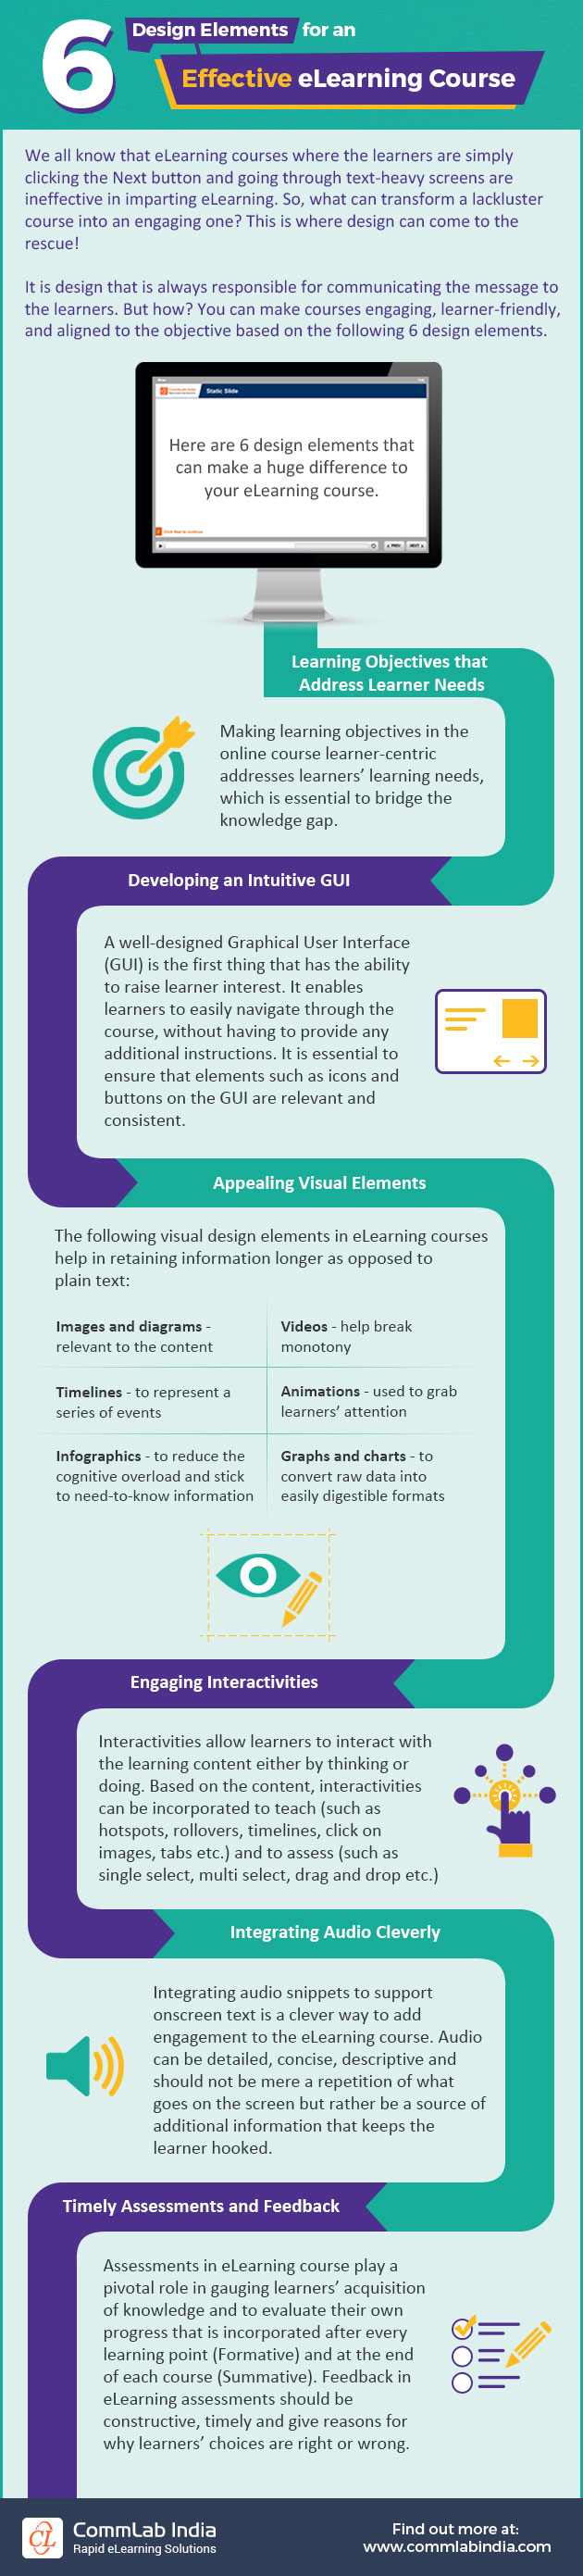 6 Design Elements for an Effective eLearning Course [Infographic]